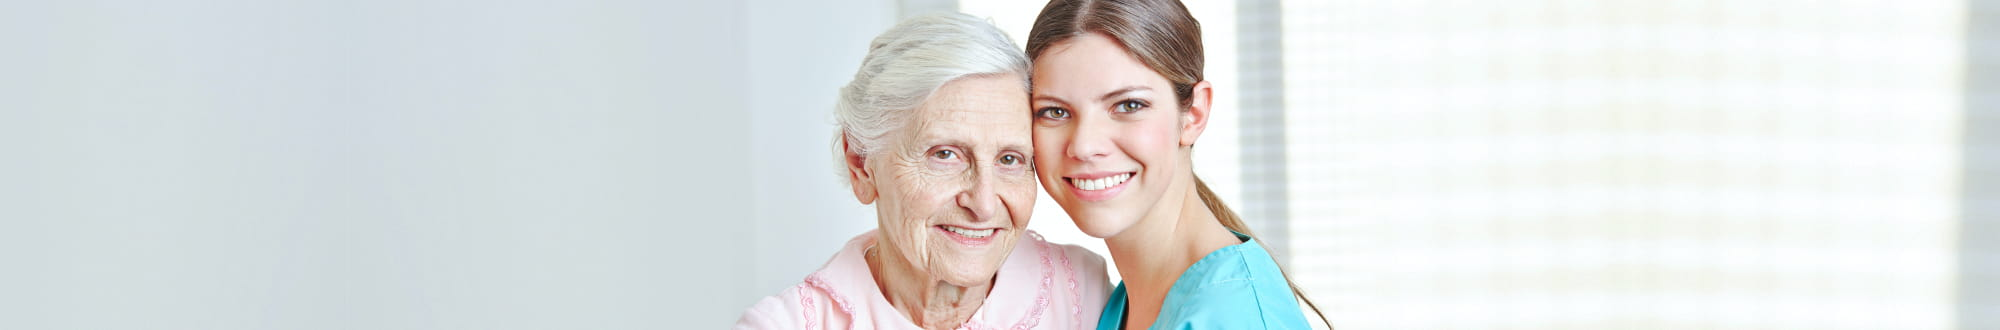 female caregiver with senior woman smiling